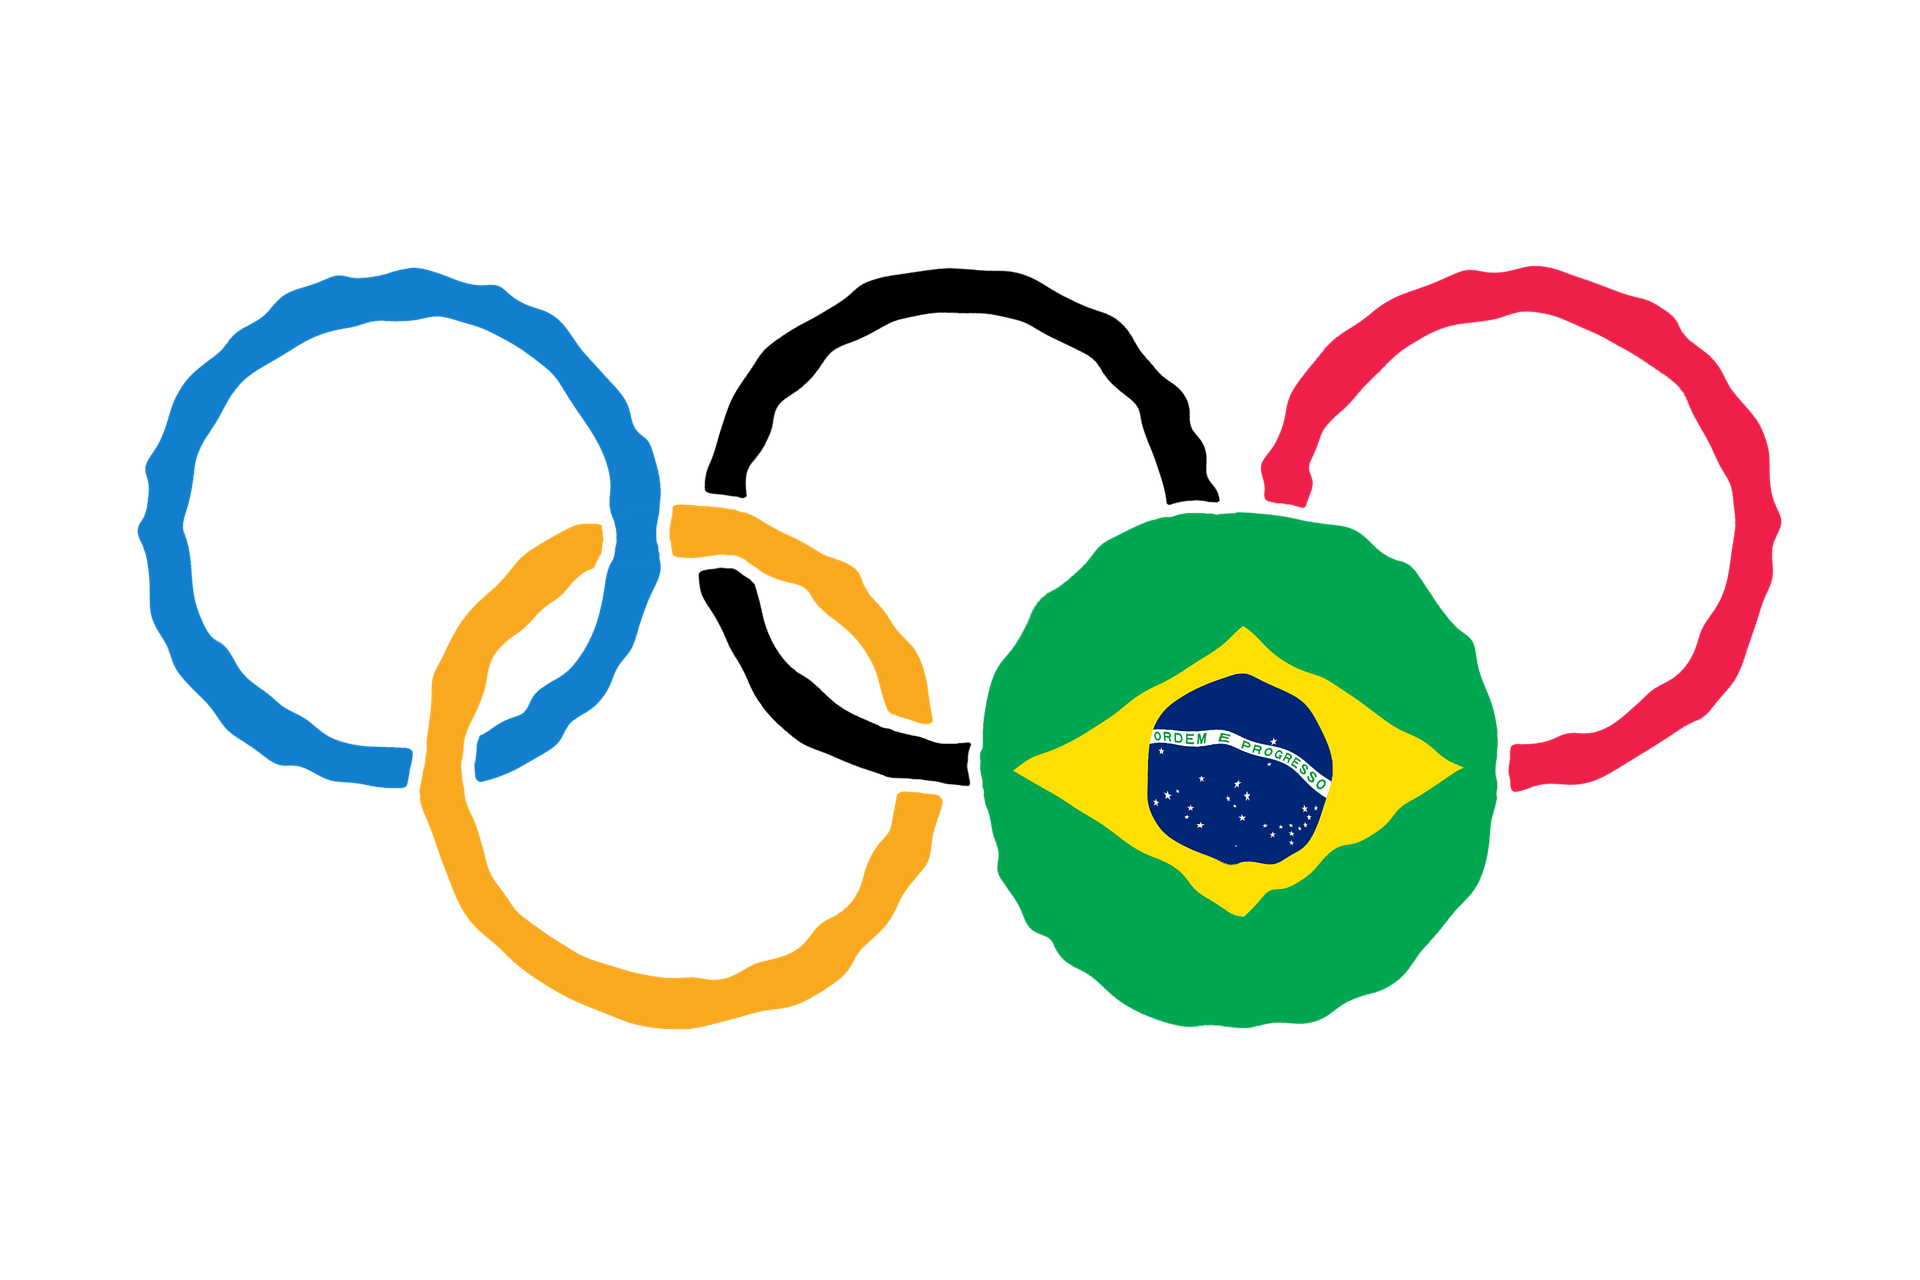 Rio Olympics Live Streaming topped 1 billion minutes